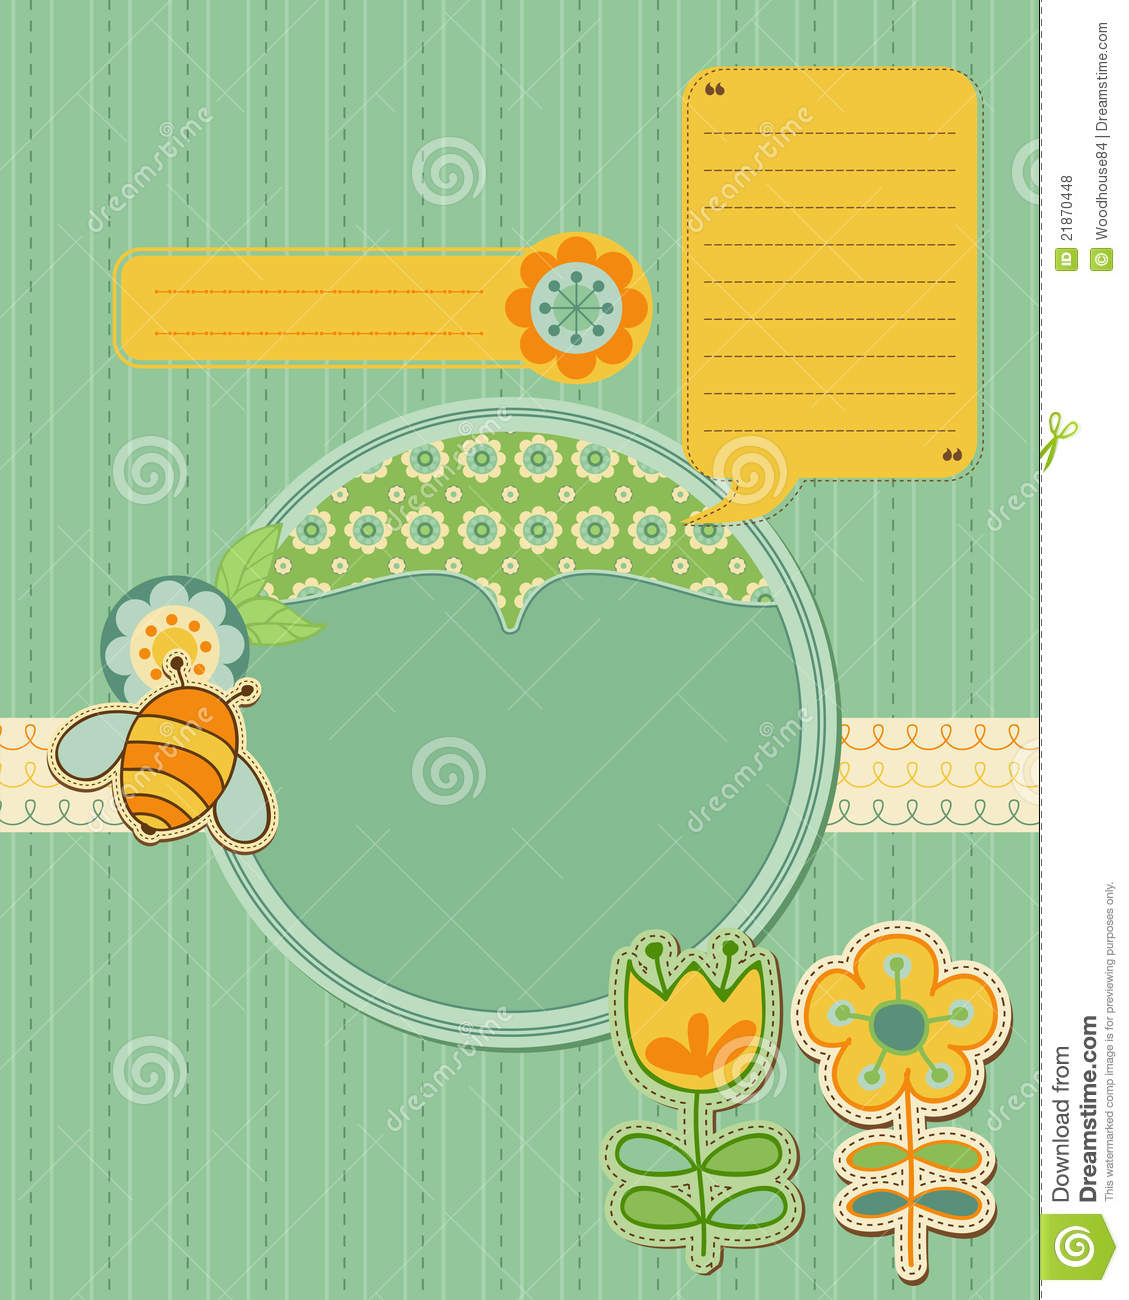 Baby Card with bee and flowers